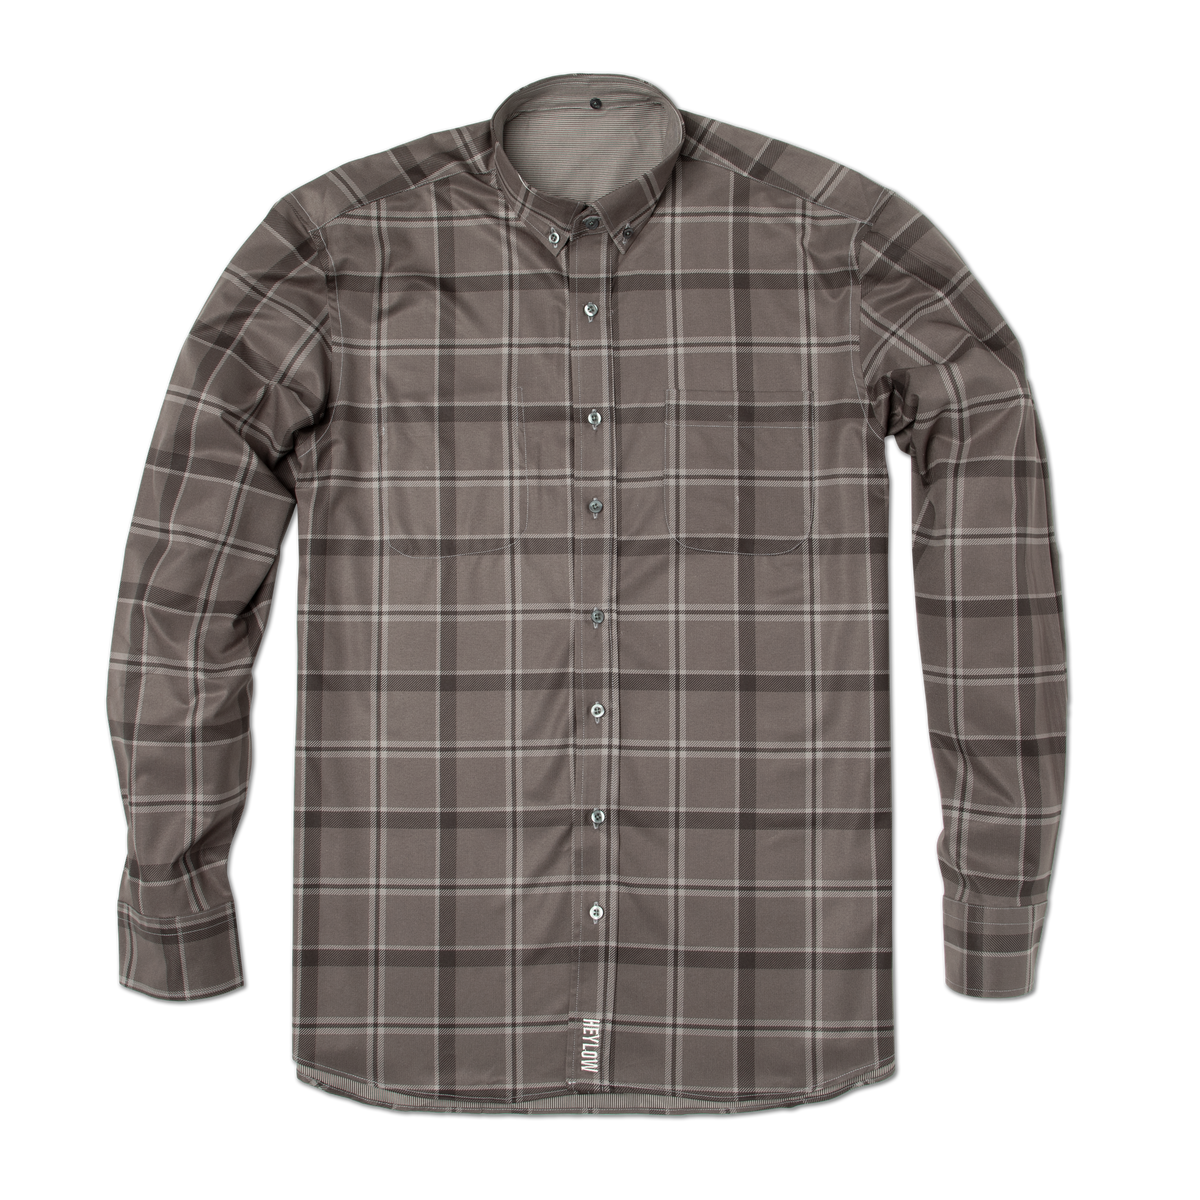 Out of Office Button Down: Charcoal Plaid